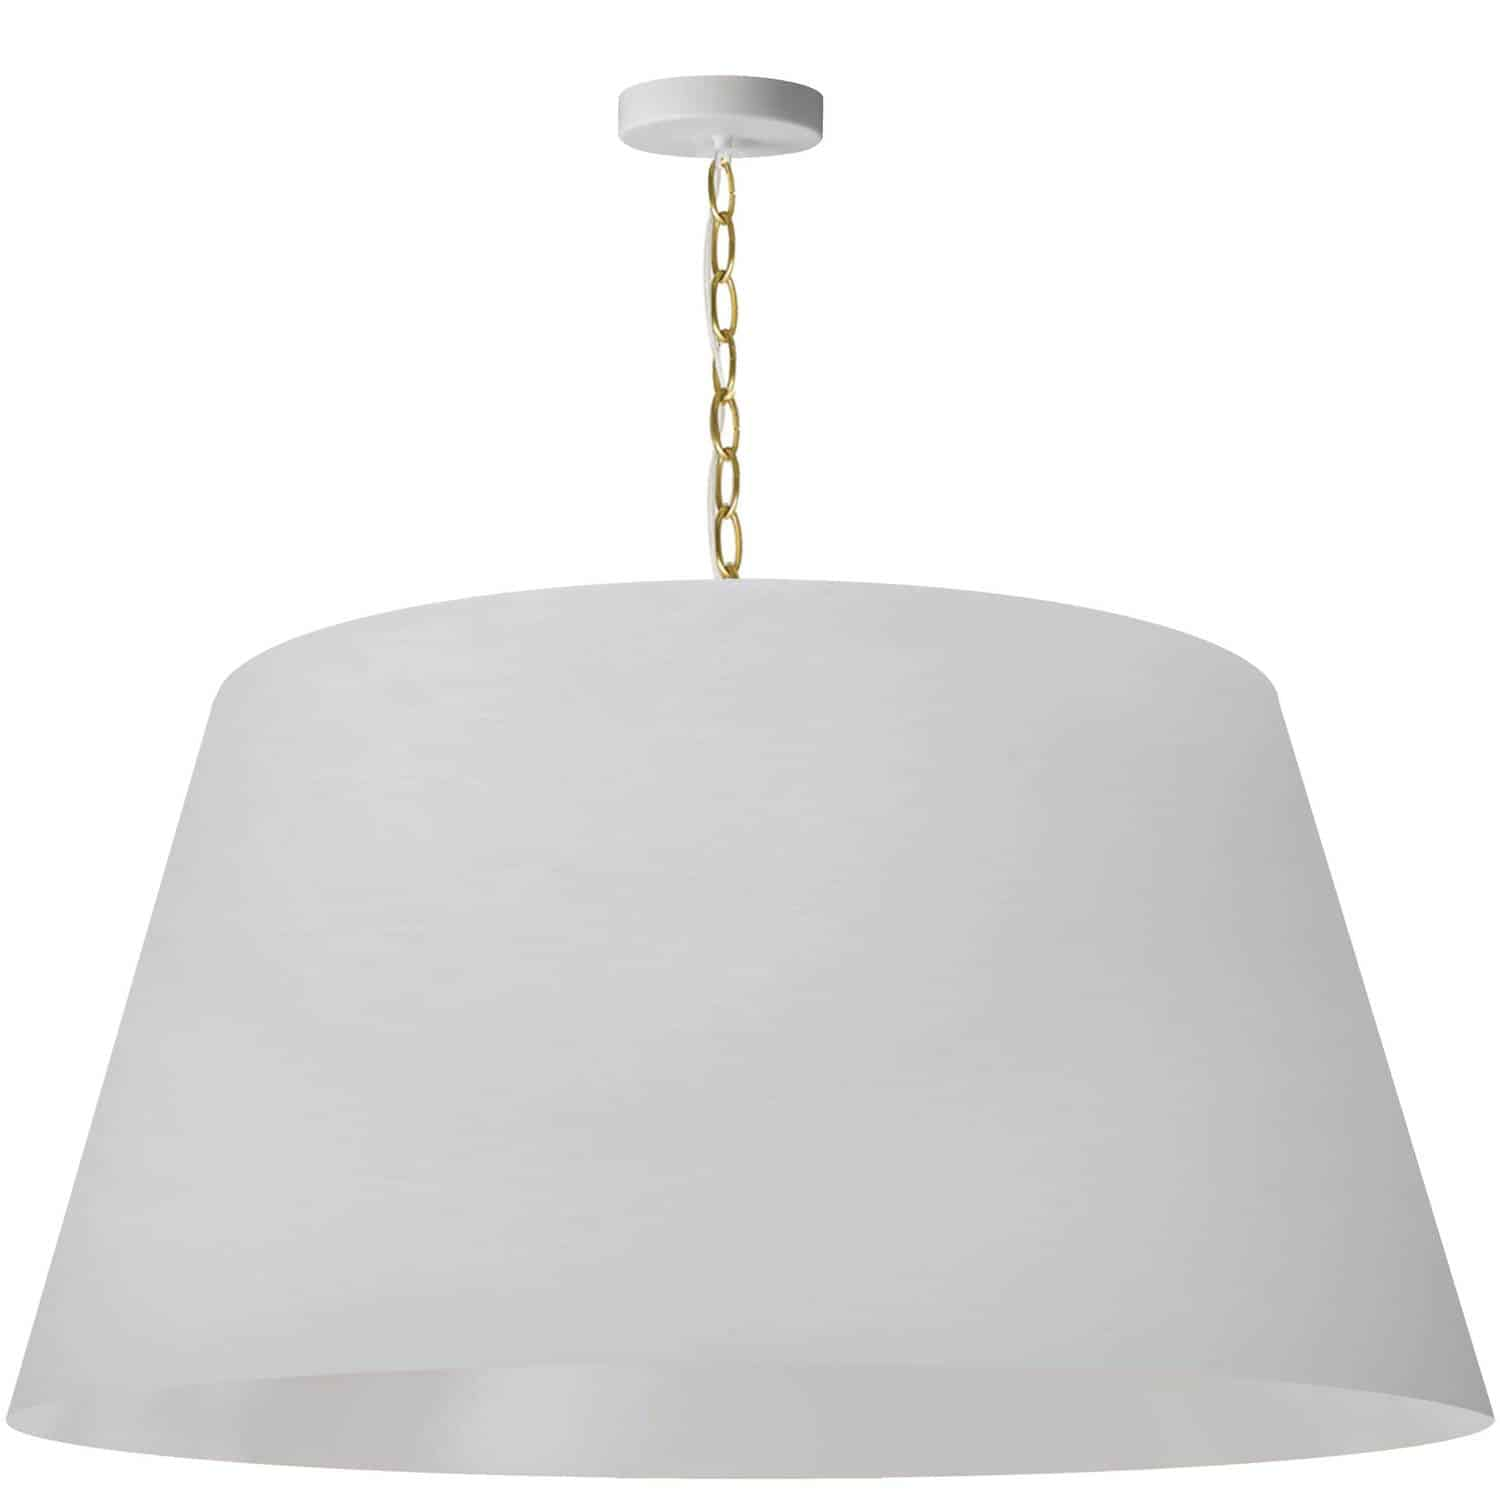 1 Light Brynn Extra Large Pendant, White Shade, Aged Brass